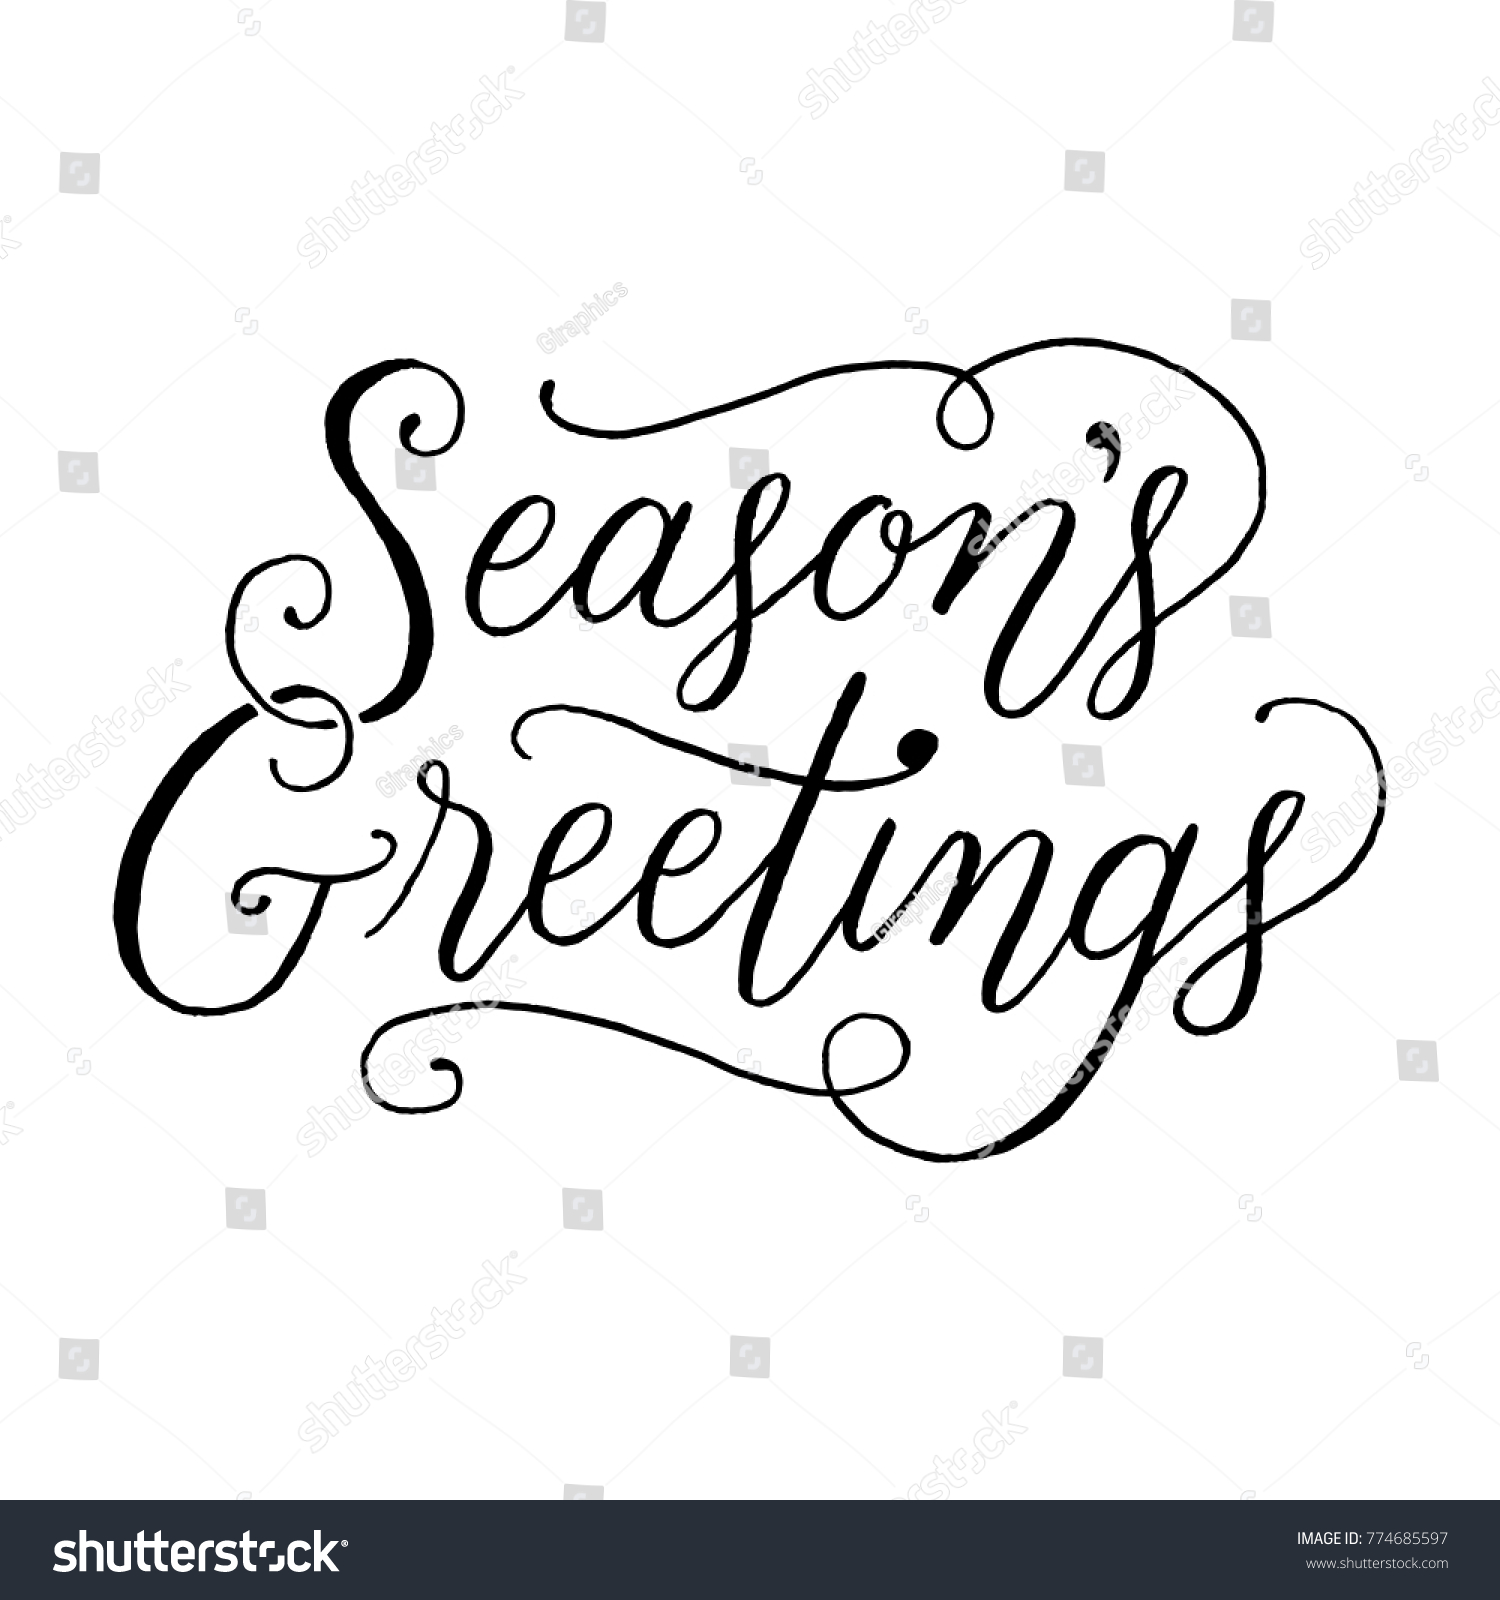 Seasons greetings handlettered holiday message isolated stock vector seasons greetings hand lettered holiday message isolated on a white background m4hsunfo